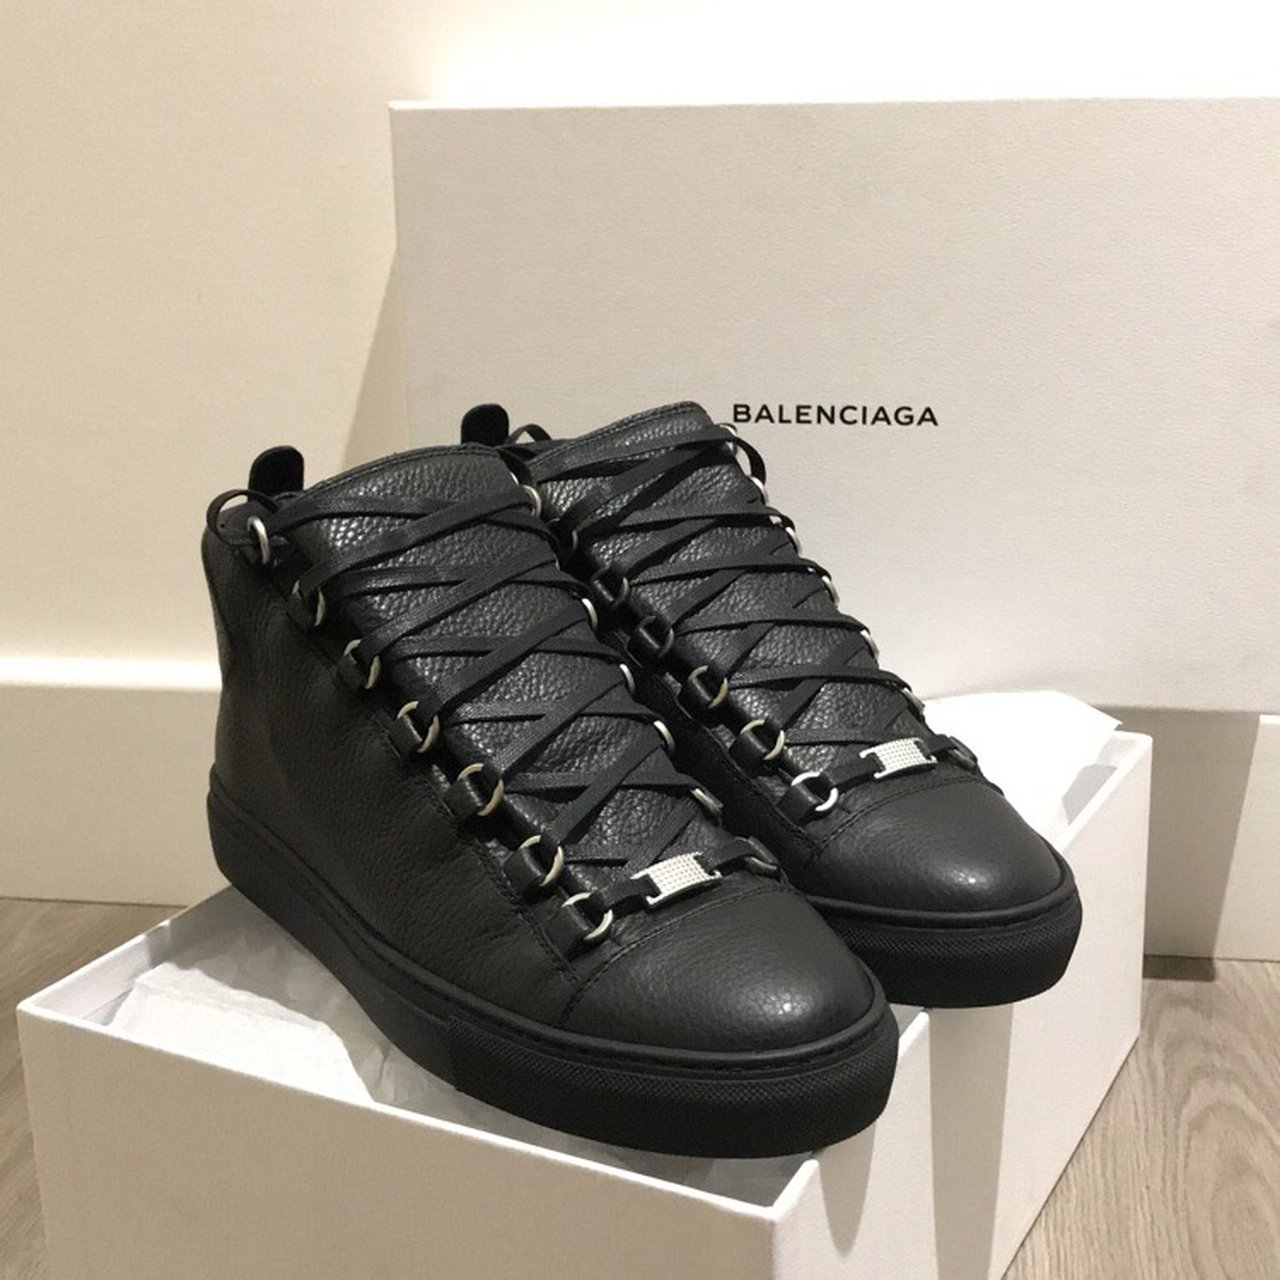 8880ec4a44187 Black Size Depop Eu Uk Men s 41 high Arena s Me 7 Top Balenciaga SxwfUafq